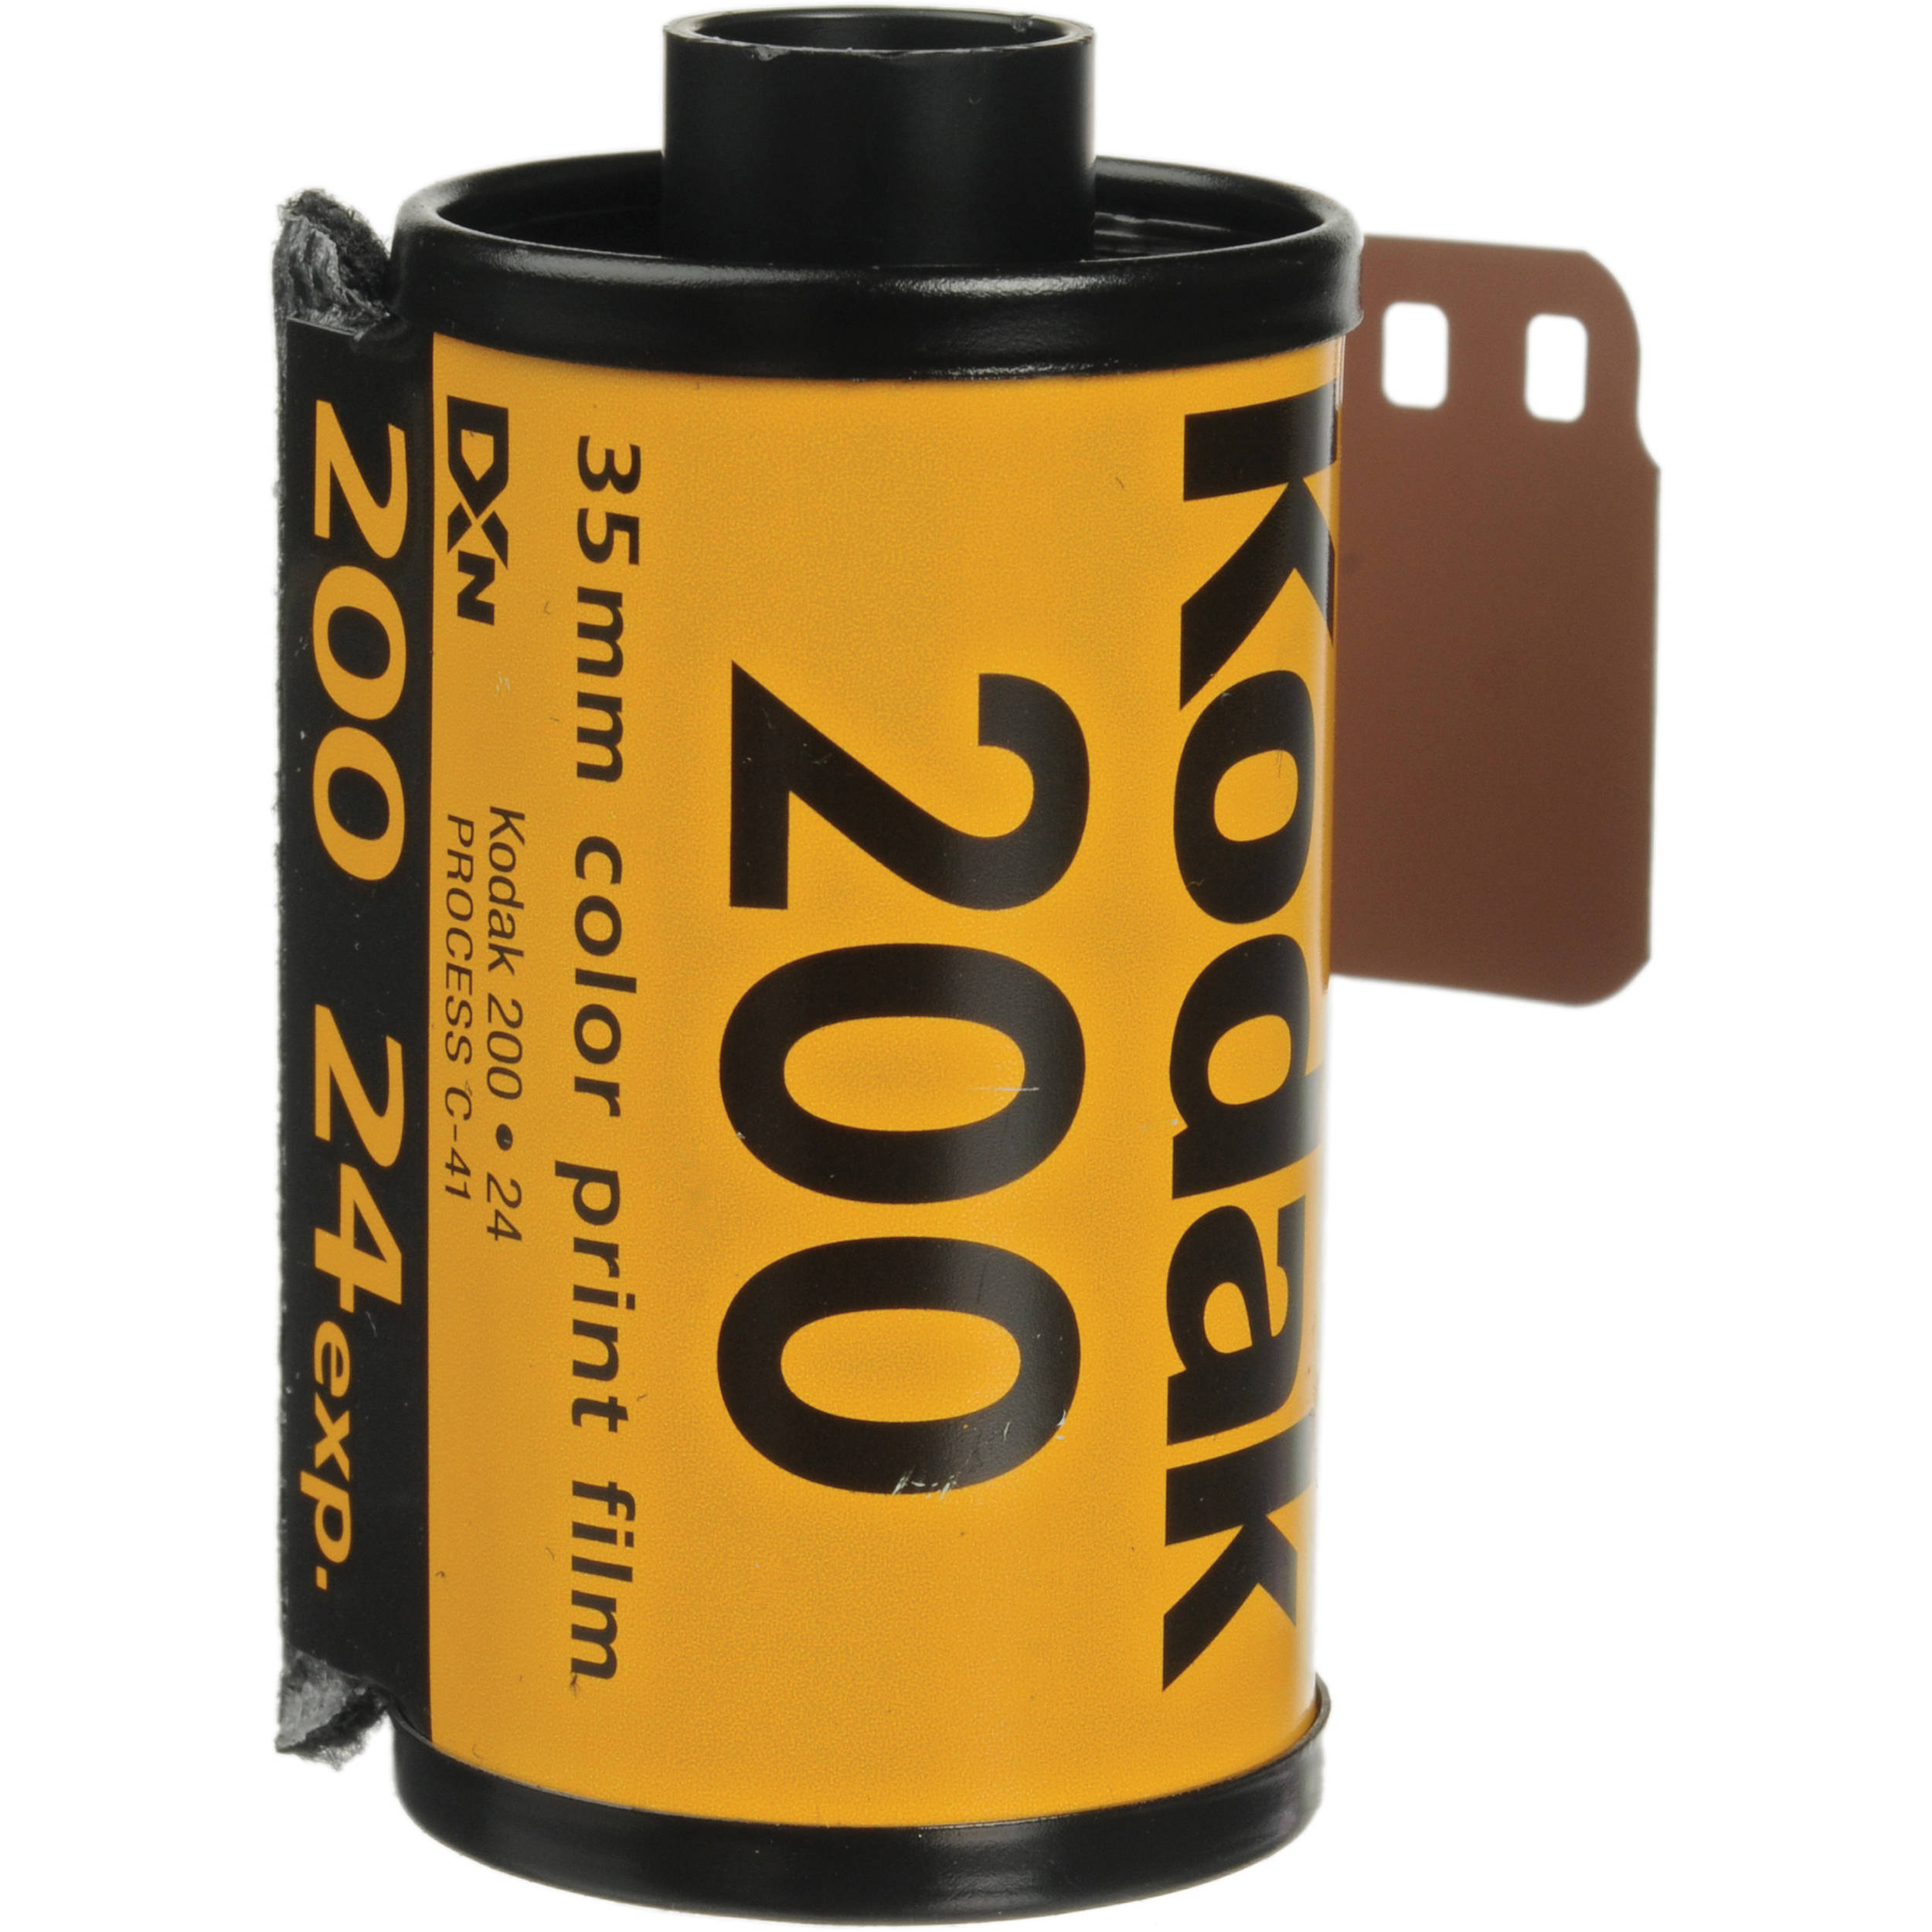 Kodak GOLD 200 Color Negative Film 6033955 B&H Photo Video